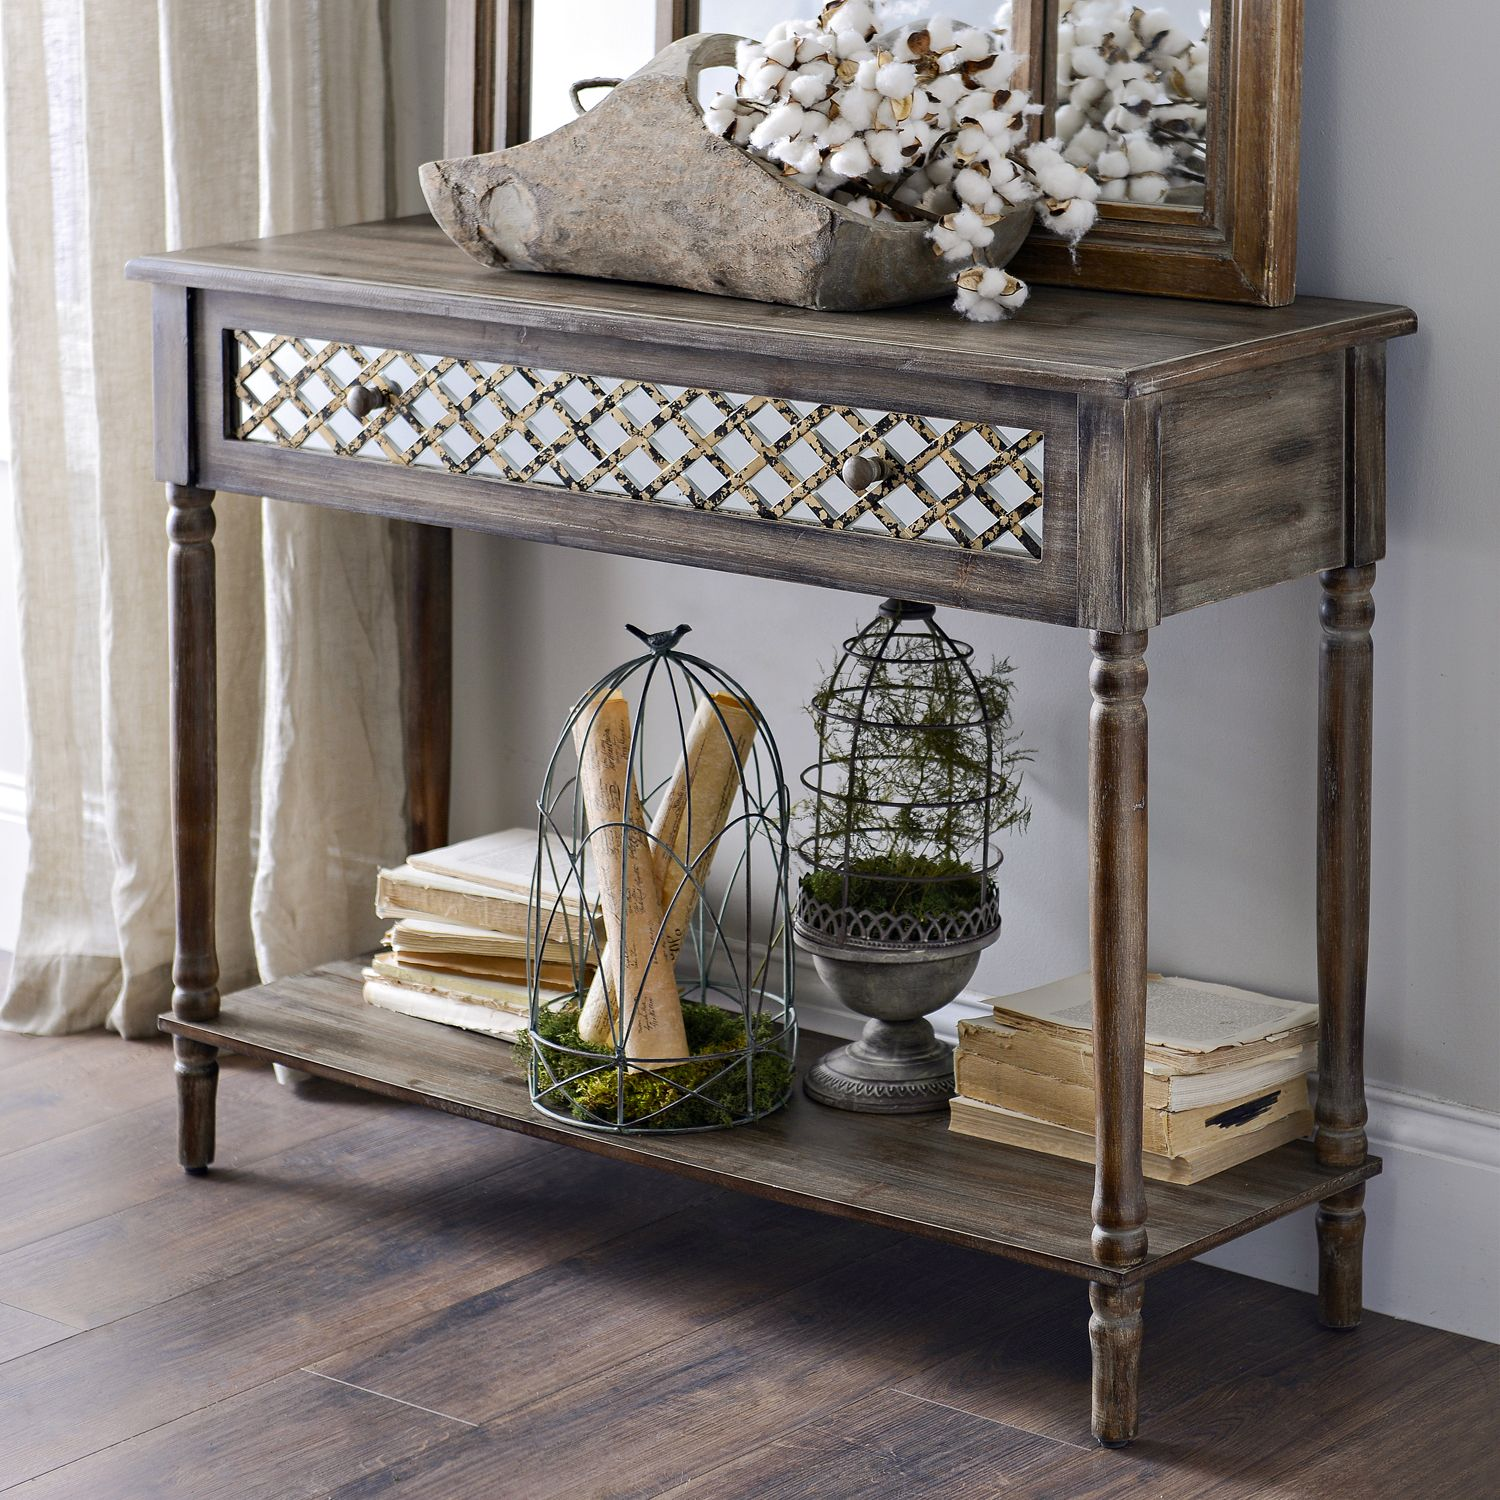 Distressed rustic mirrored console table driftwood console the distressed rustic mirrored console table is one of the most elegant and timeless pieces we geotapseo Images